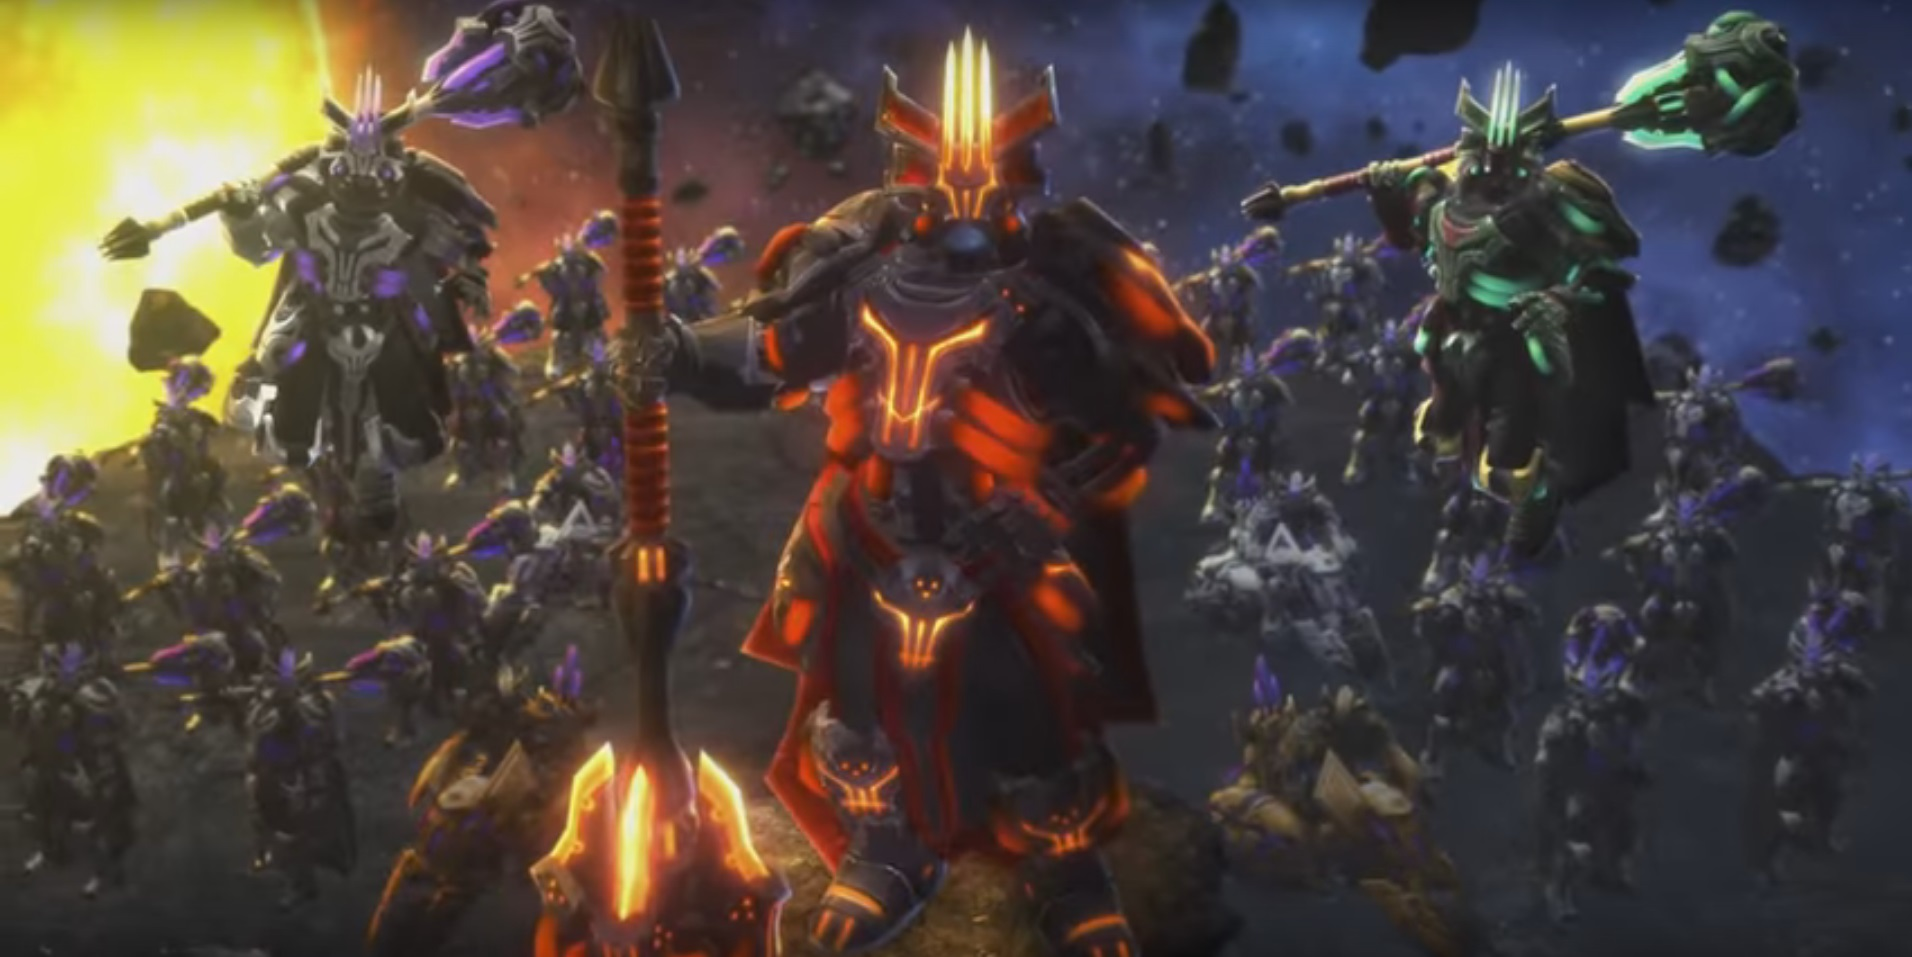 Eternal empire heroes of the storm wiki fandom powered - Heroes of the storm space lord leoric ...